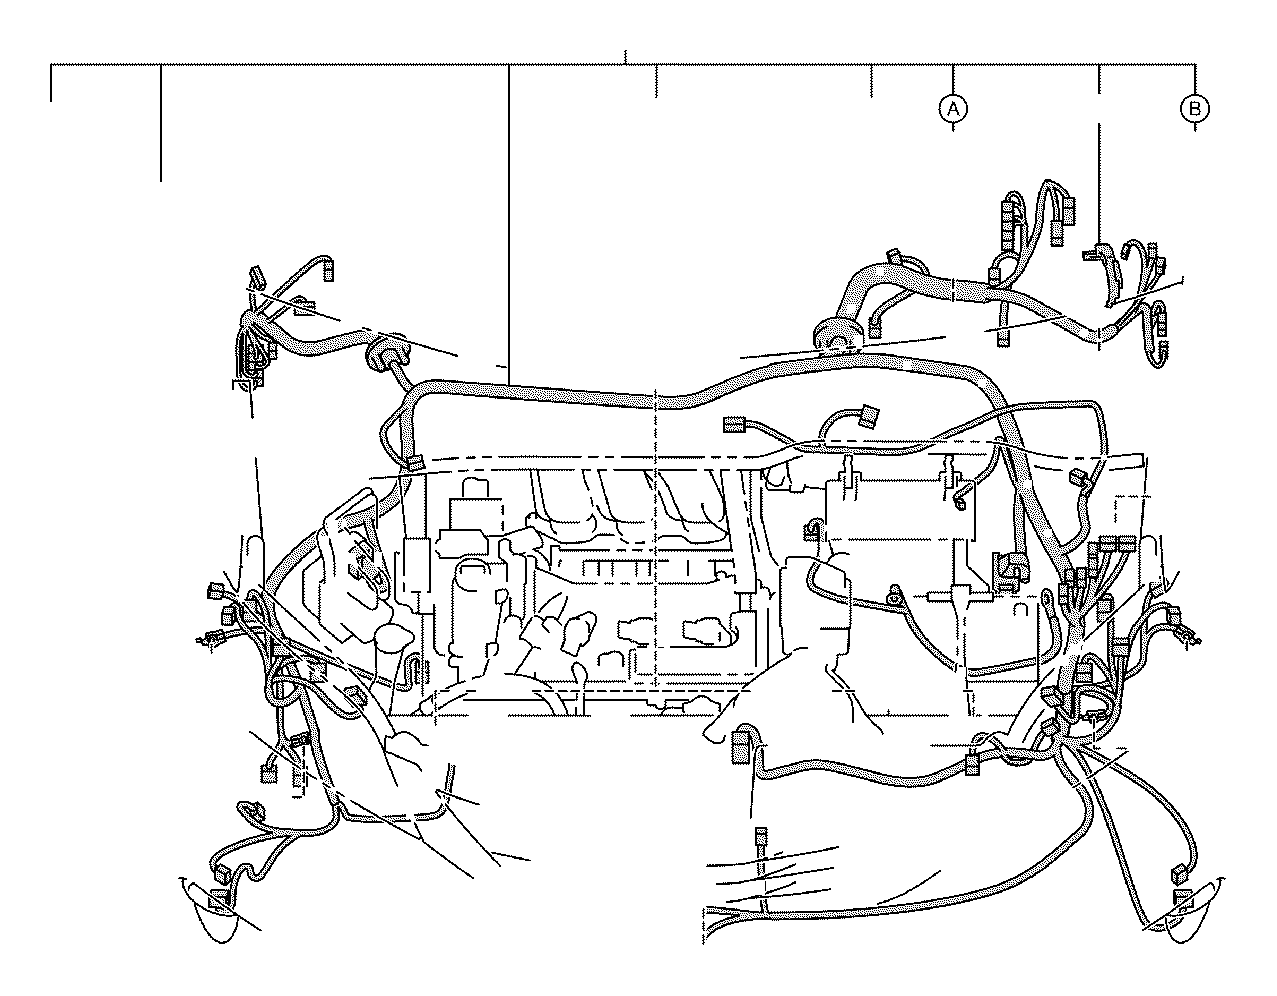 2013 Toyota Sienna Protector, wiring harness, no. 1